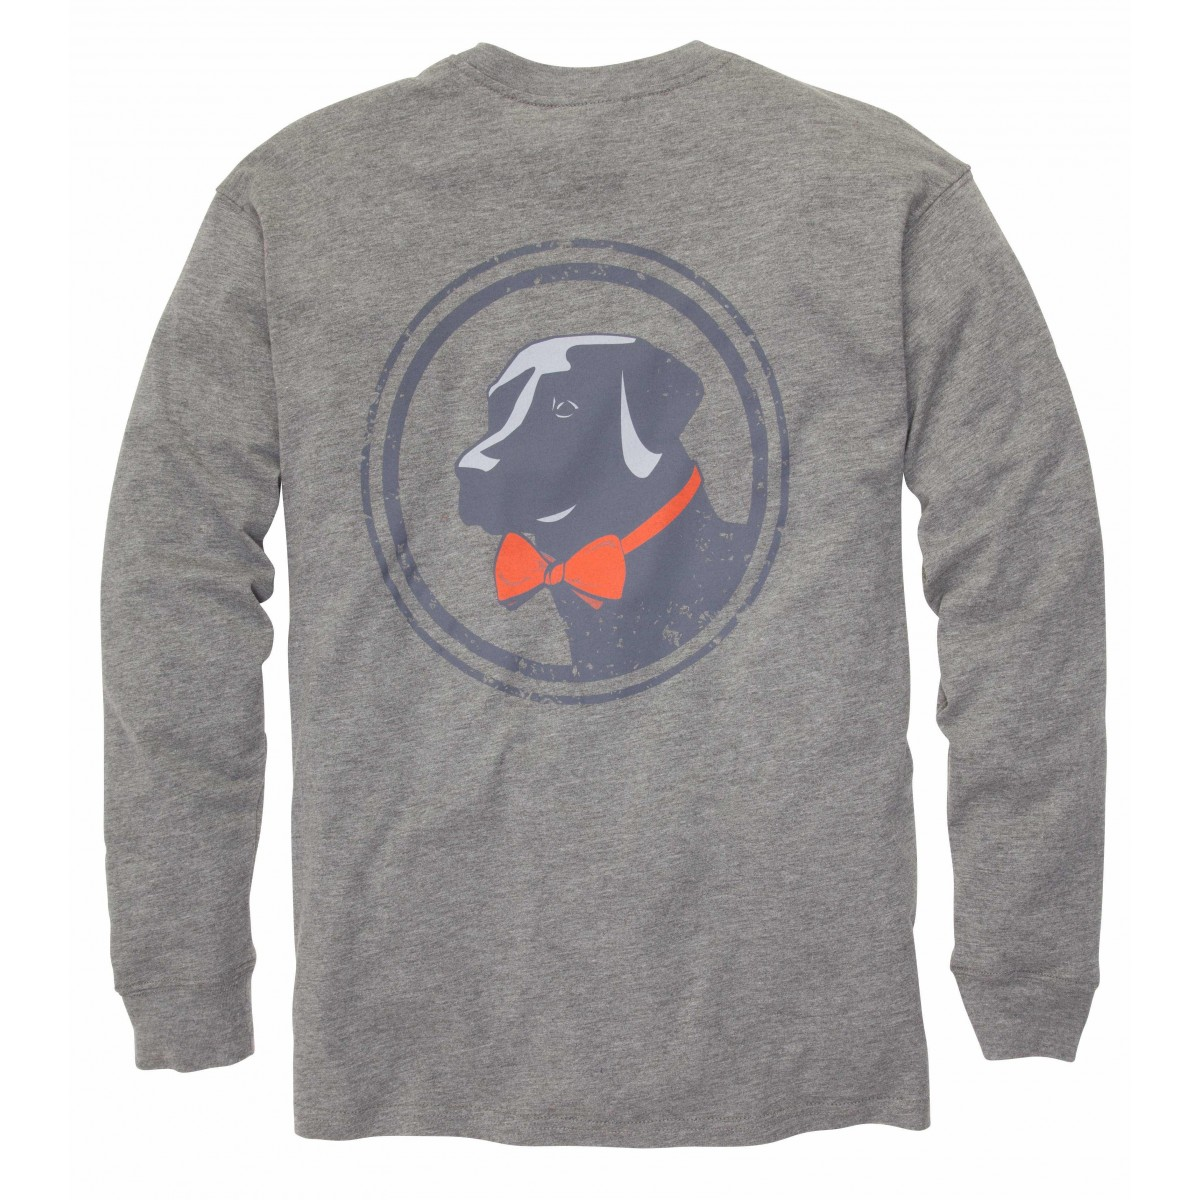 Original Tee - Grey Long Sleeve